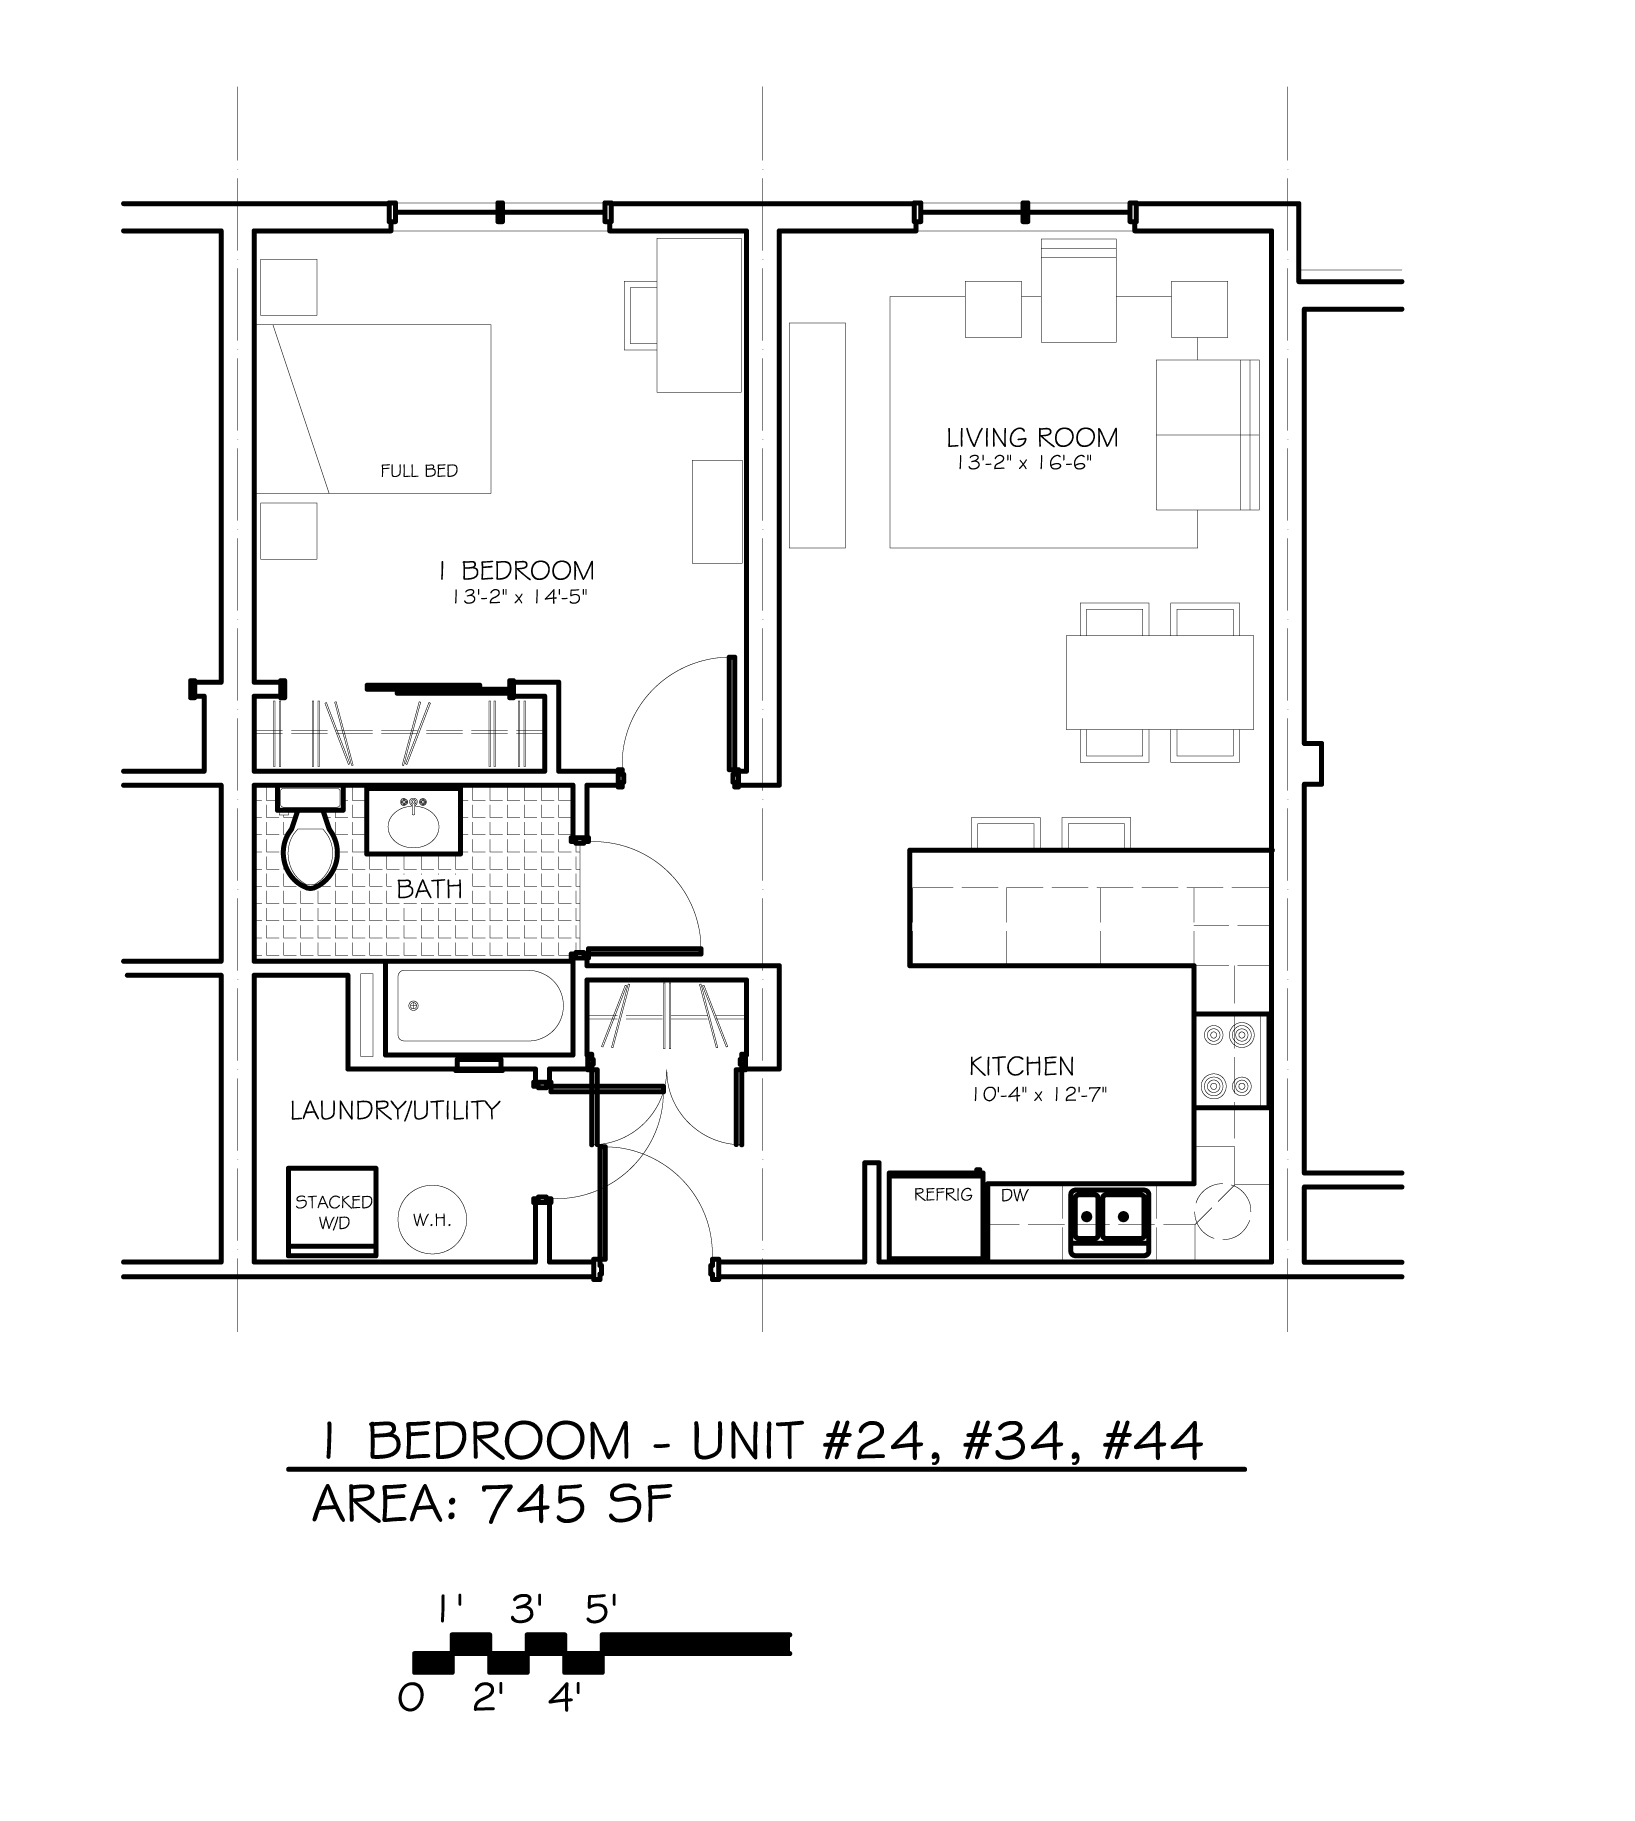 apartment building plans 12 units link to floor plan of apt 24